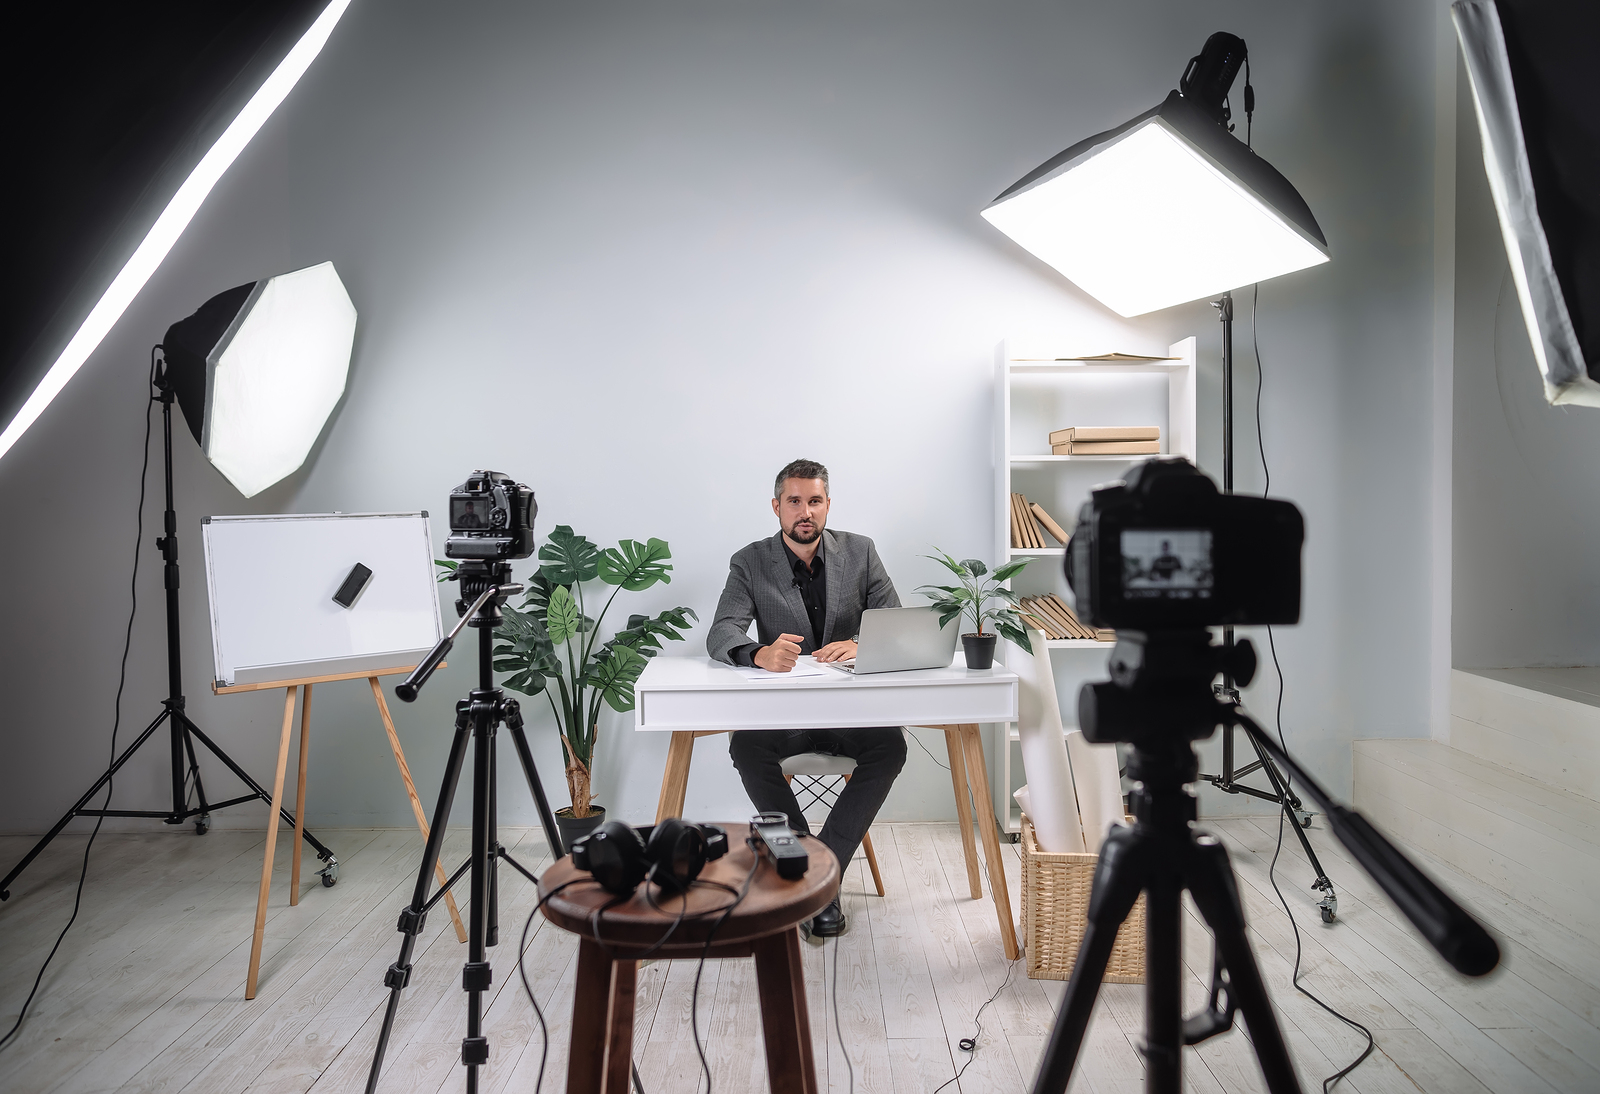 5 Things to consider before producing your own in-house video content